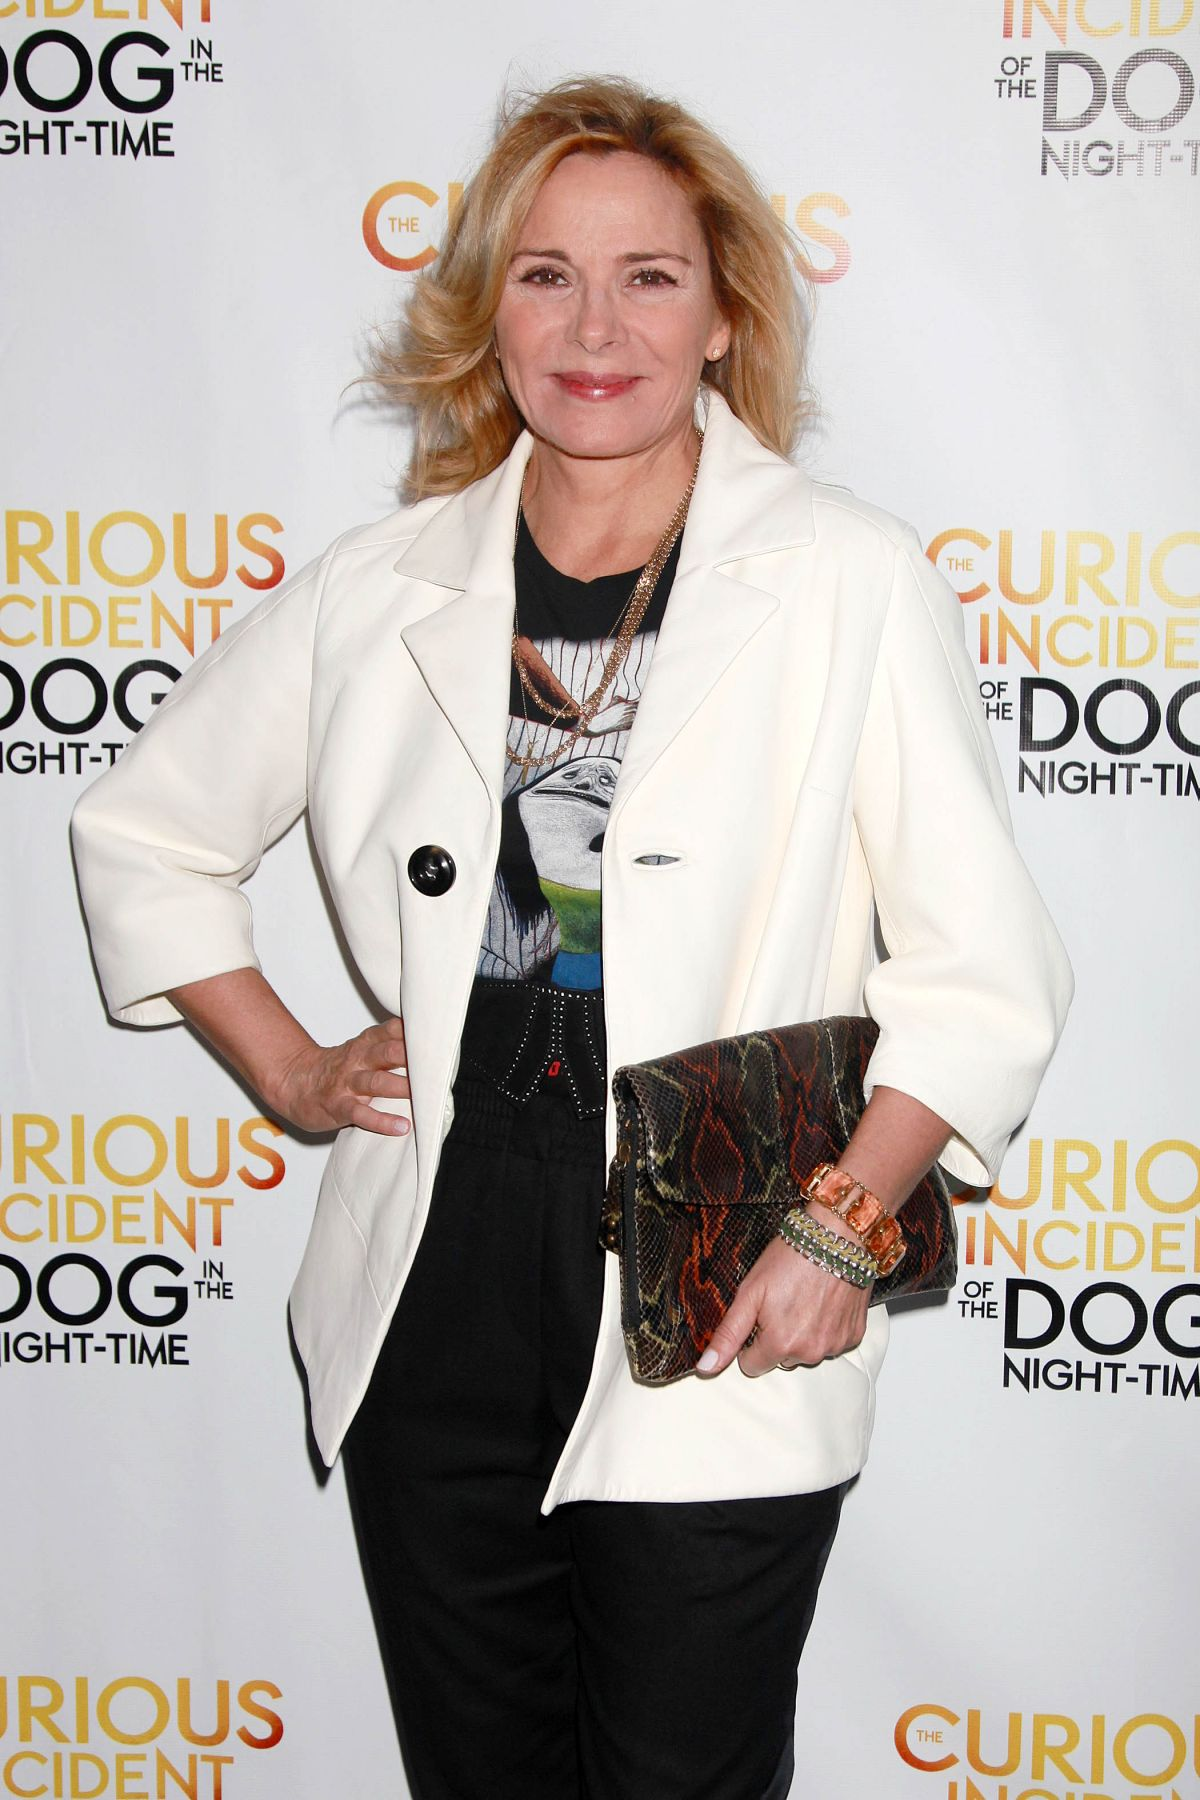 KIM CATTRALL at The Curious Incident of the Dog in the Night Time Opening Night